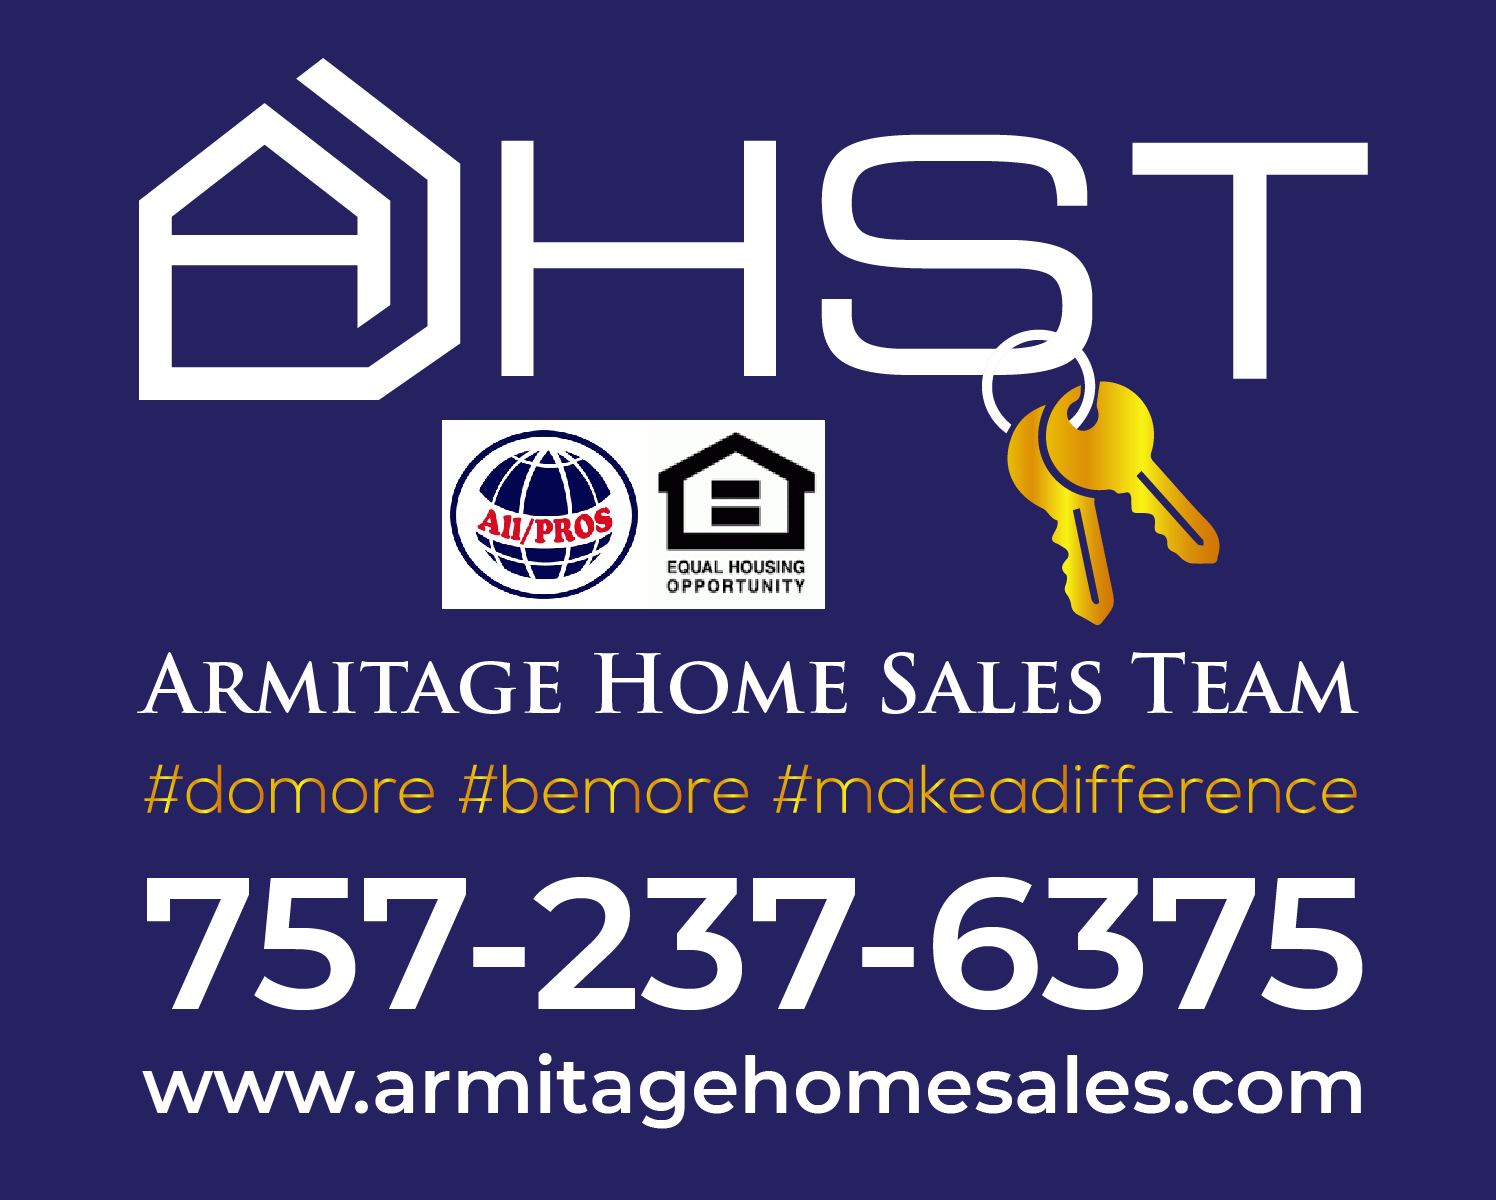 Armitage Home Sales Team